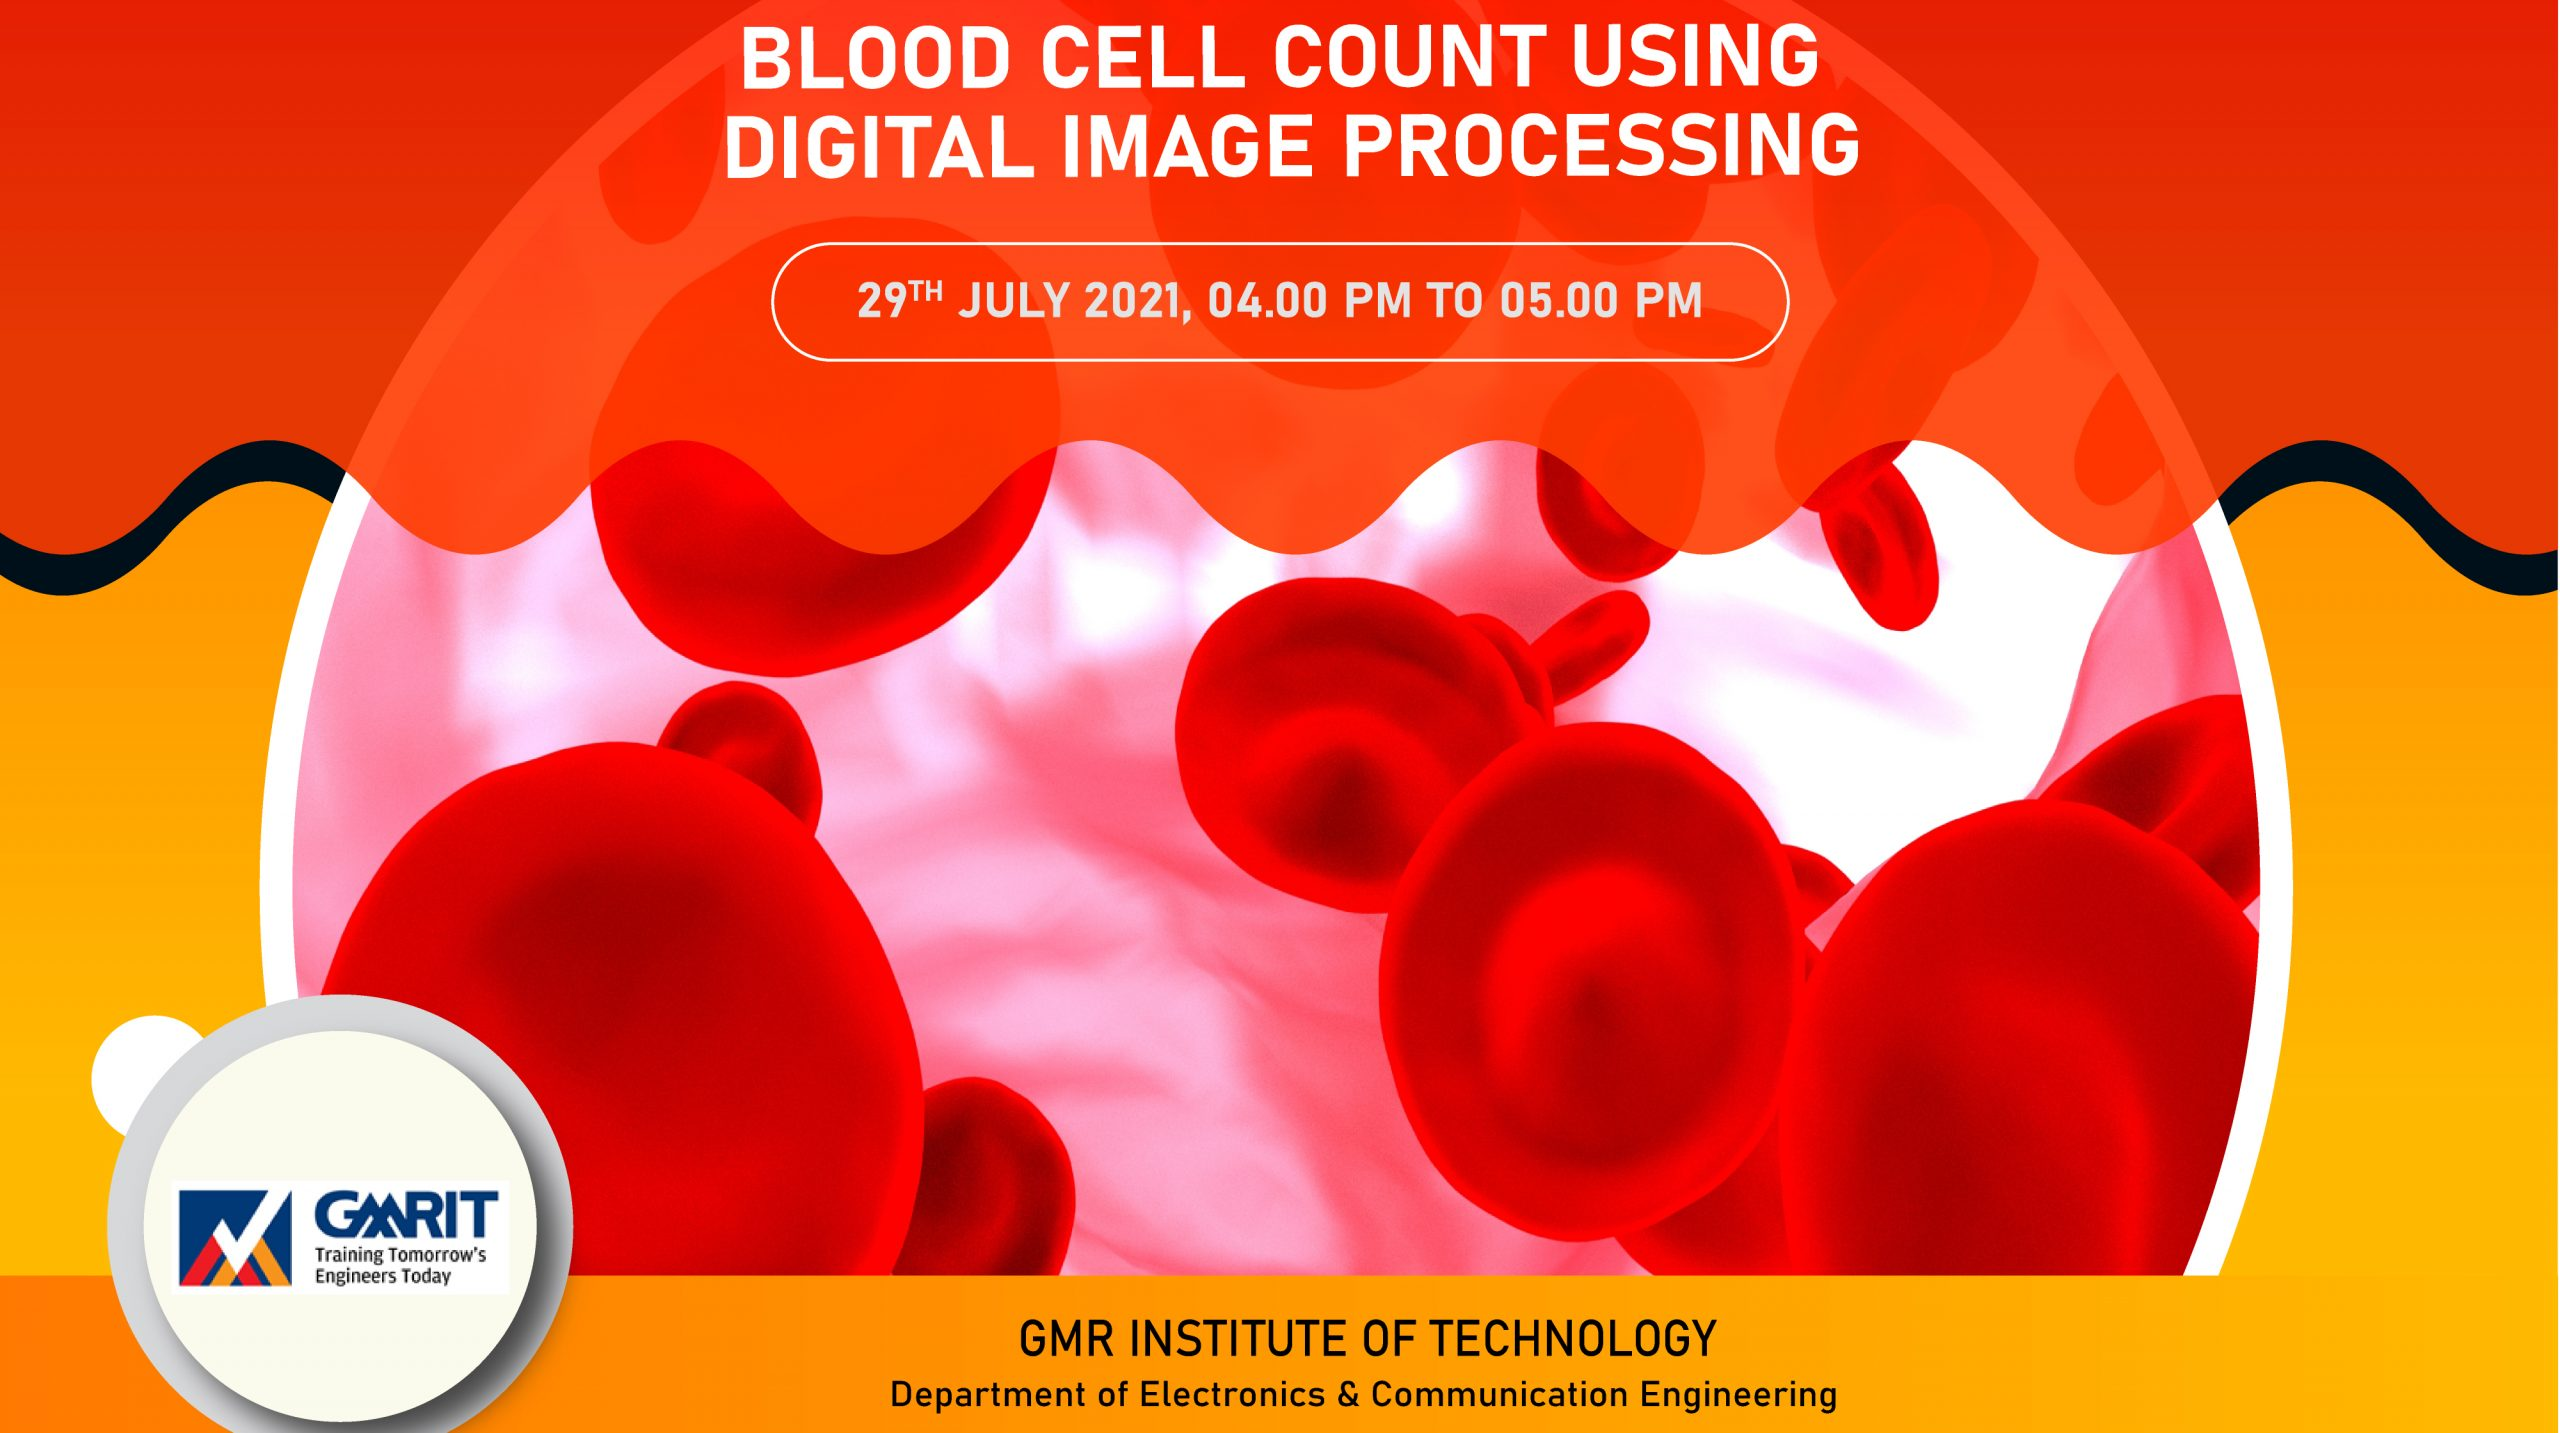 Webinar on Blood Cell Count Using Digital Image Processing - GMR